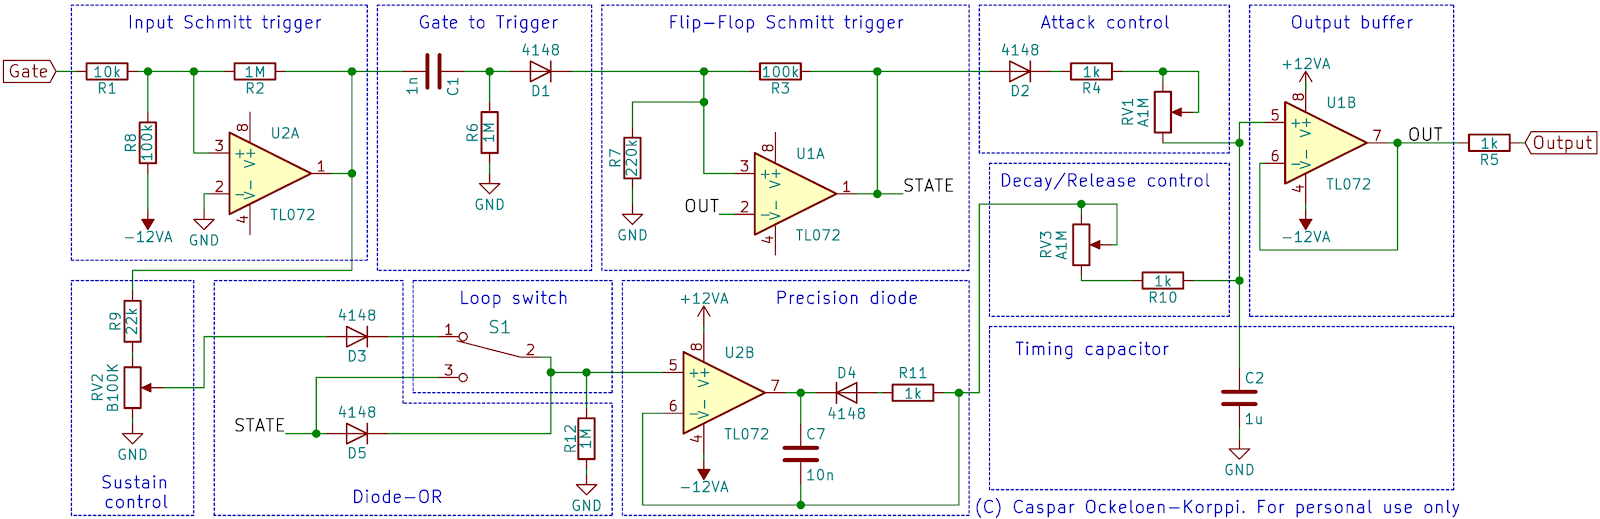 hight resolution of the gate input is conditioned by u2a using positive feedback r2 to create hysteresis and form a schmitt trigger this turns any input gate signal into a